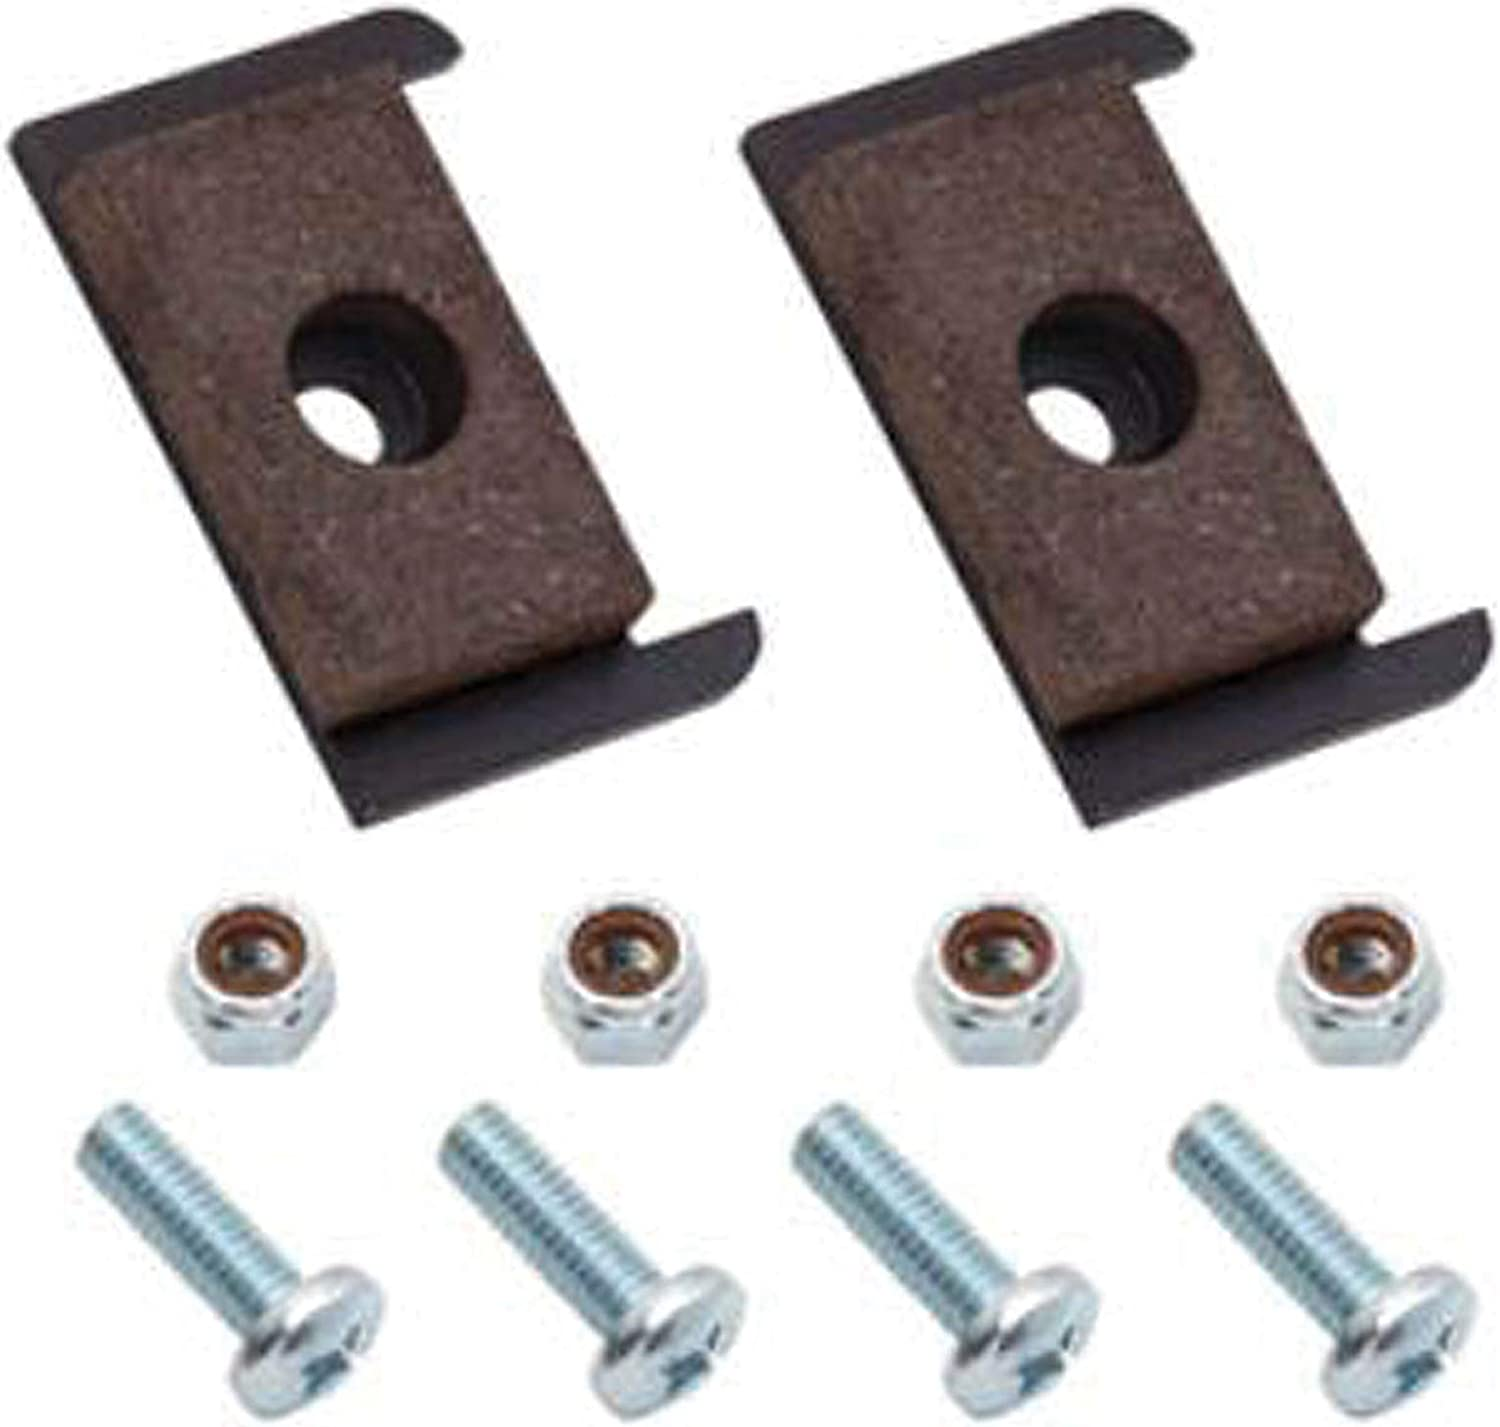 Reese 58497 Friction Pad Kit for Light Weight Distribution Kit #66557 and #66558